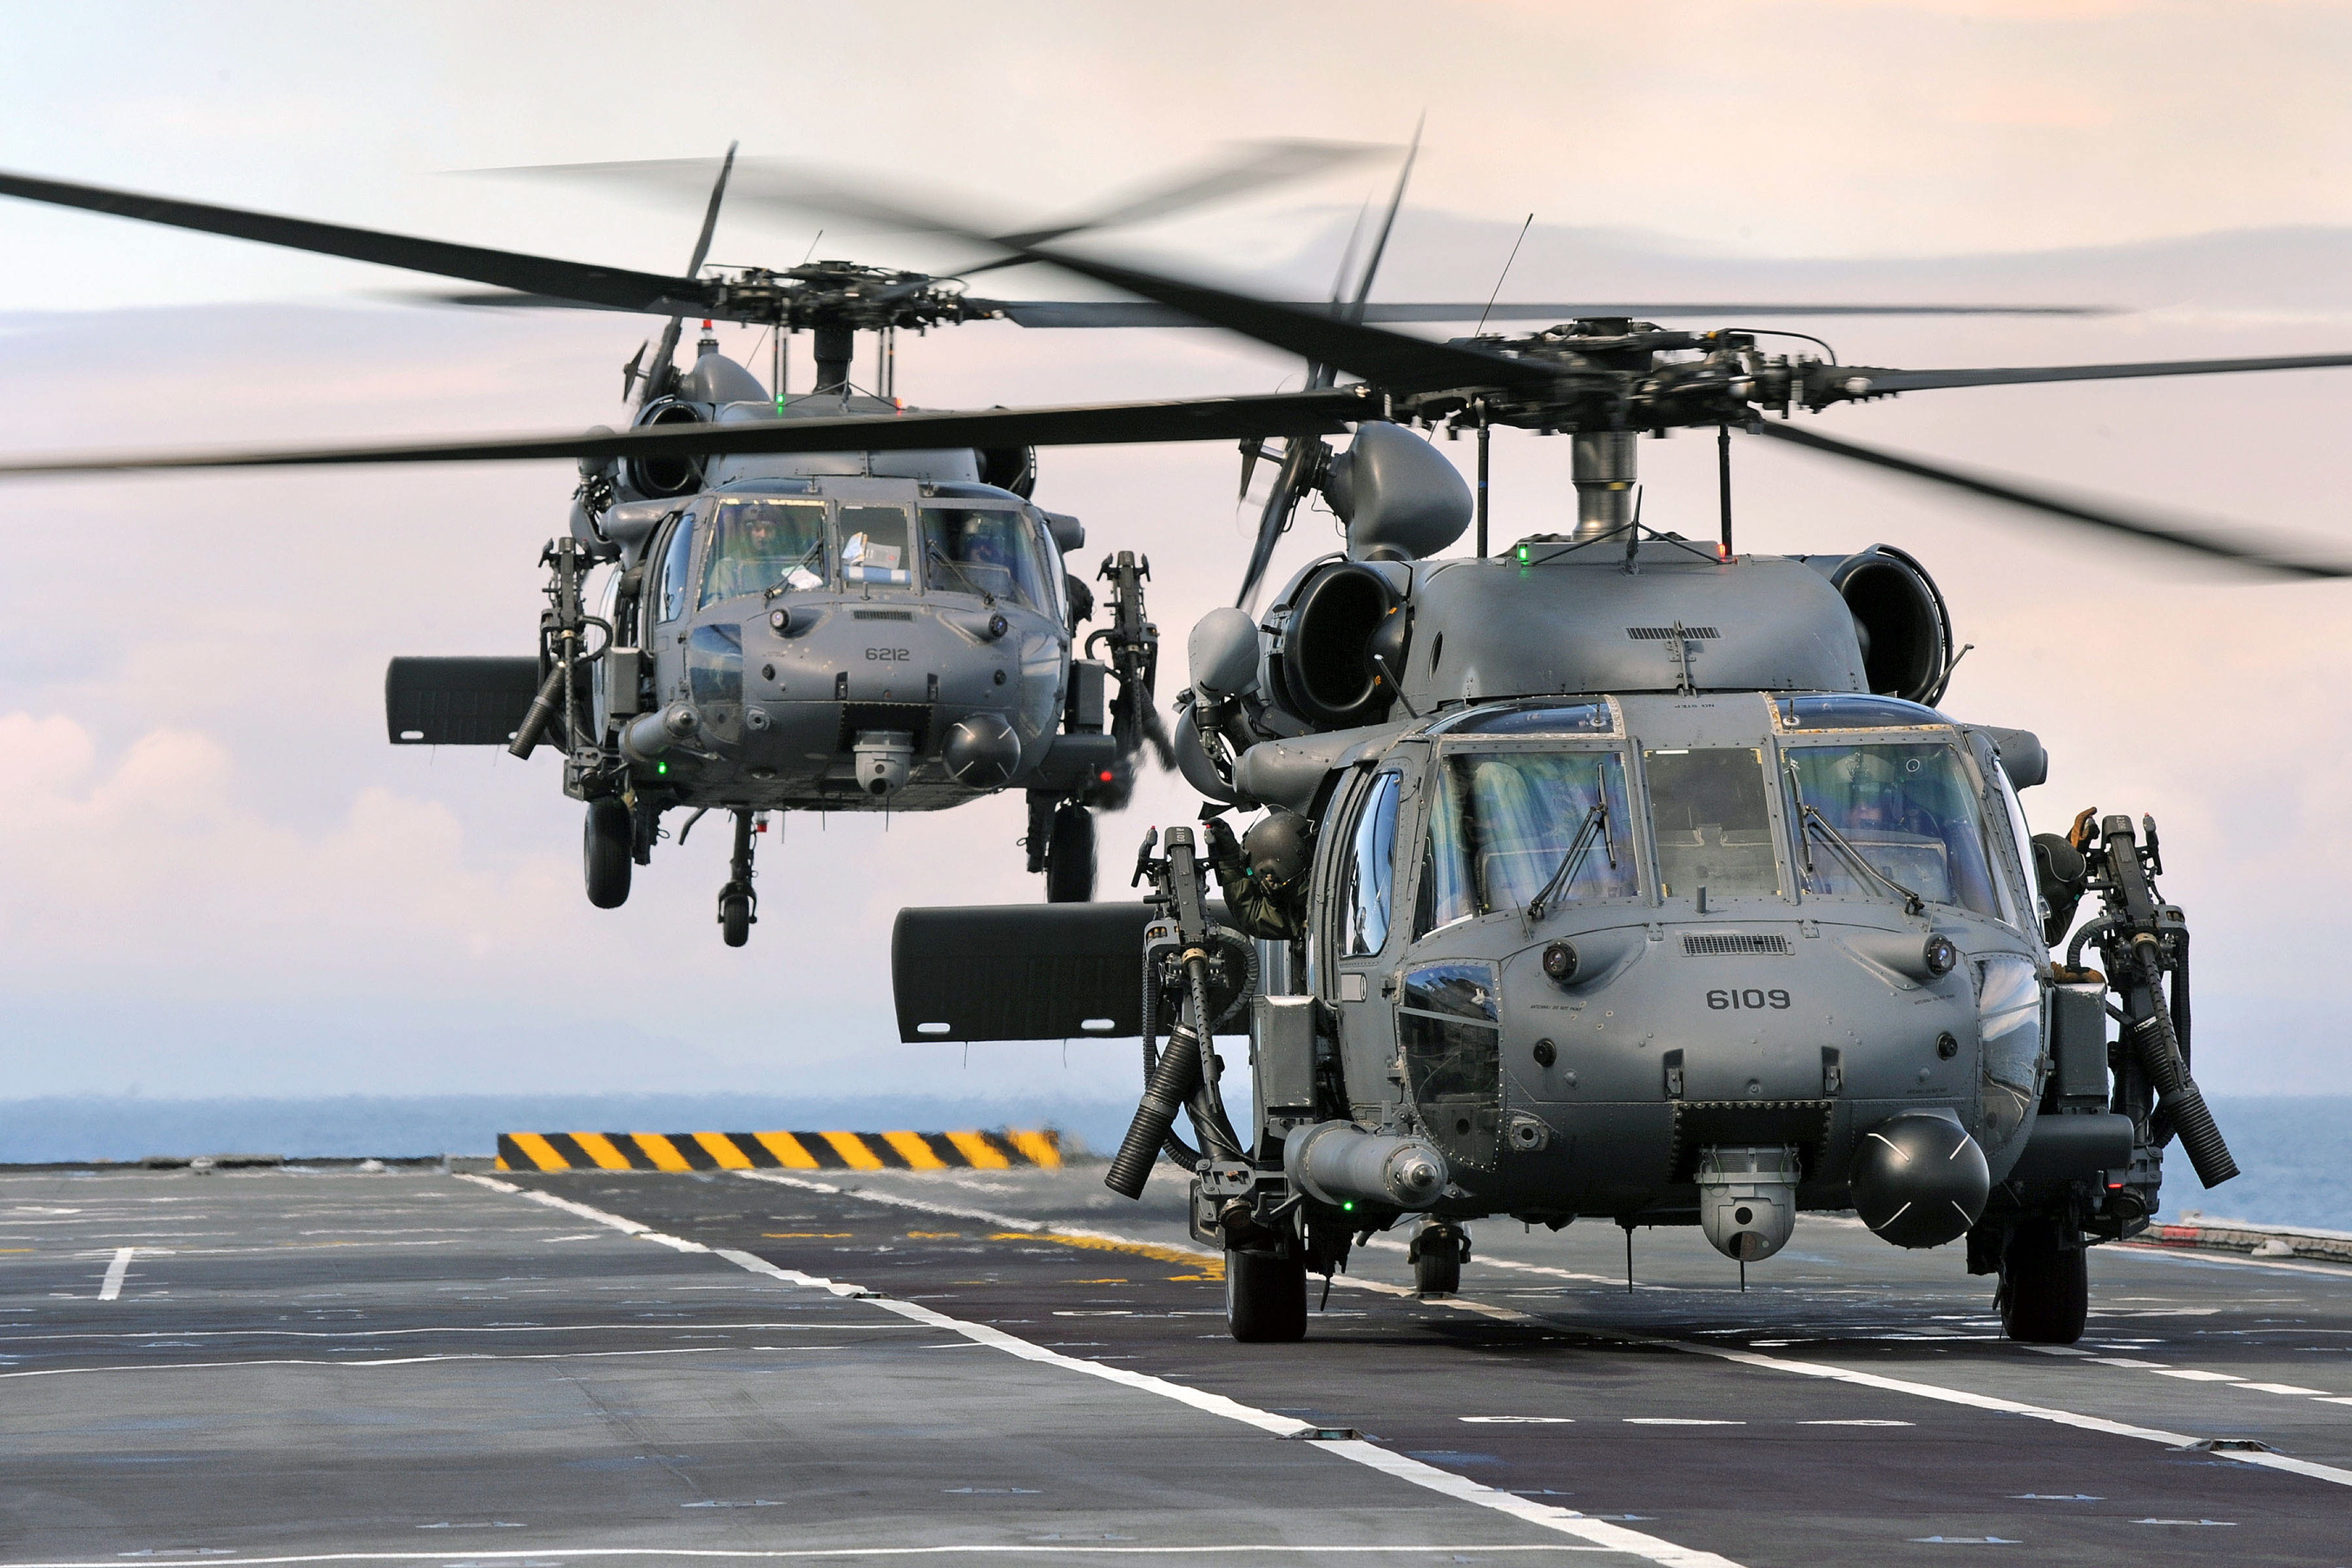 HMS Illustrious was taking part in Exercise Joint Warrior off the coast of Scotland in 2015.